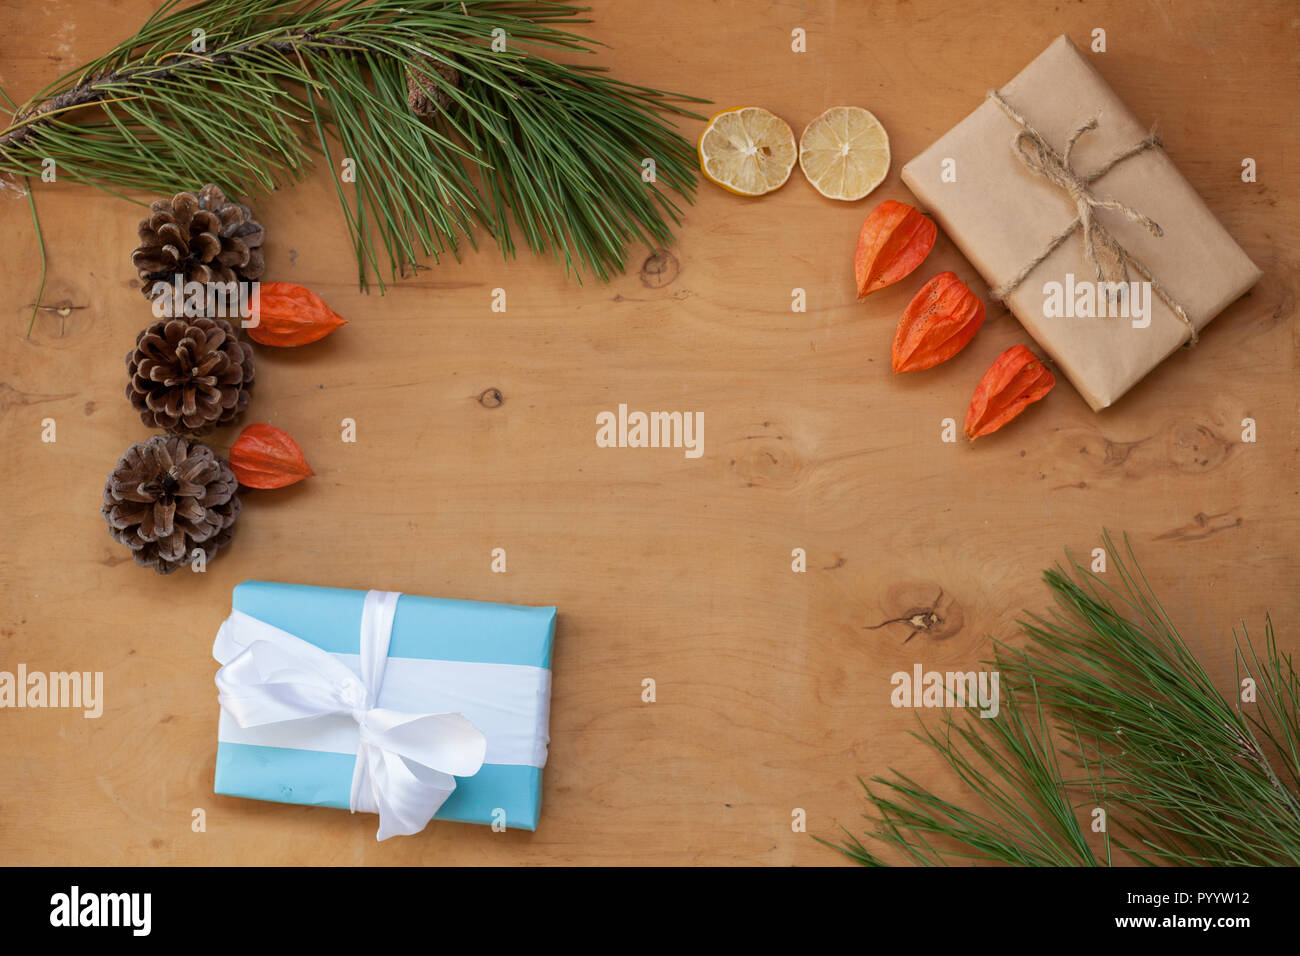 Christmas decorations Christmas tree gifts toys von Stock Photo ...